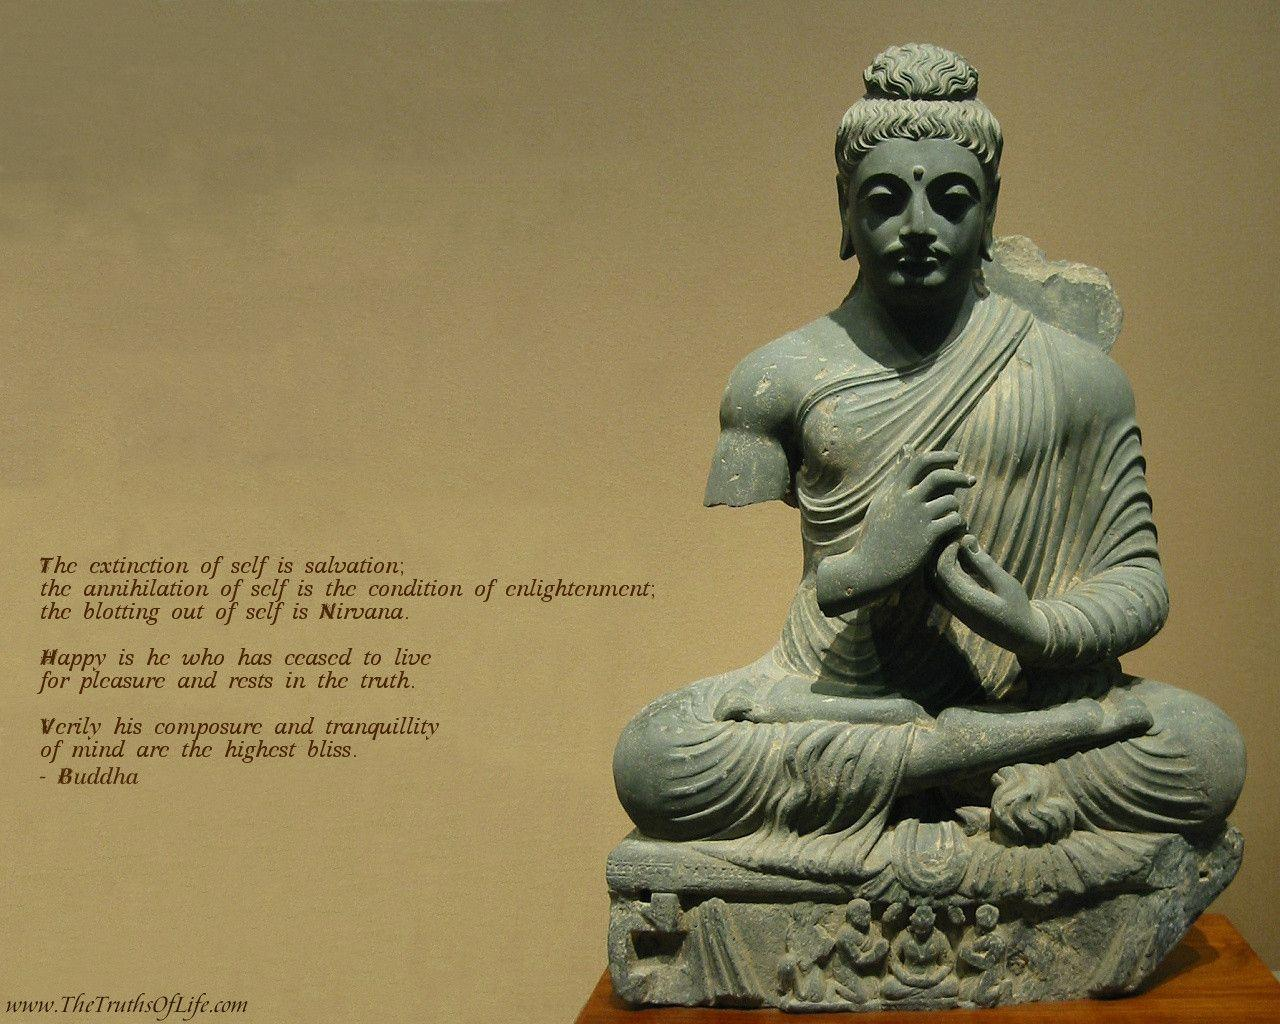 137 Buddhism Wallpapers | Buddhism Backgrounds Page 5